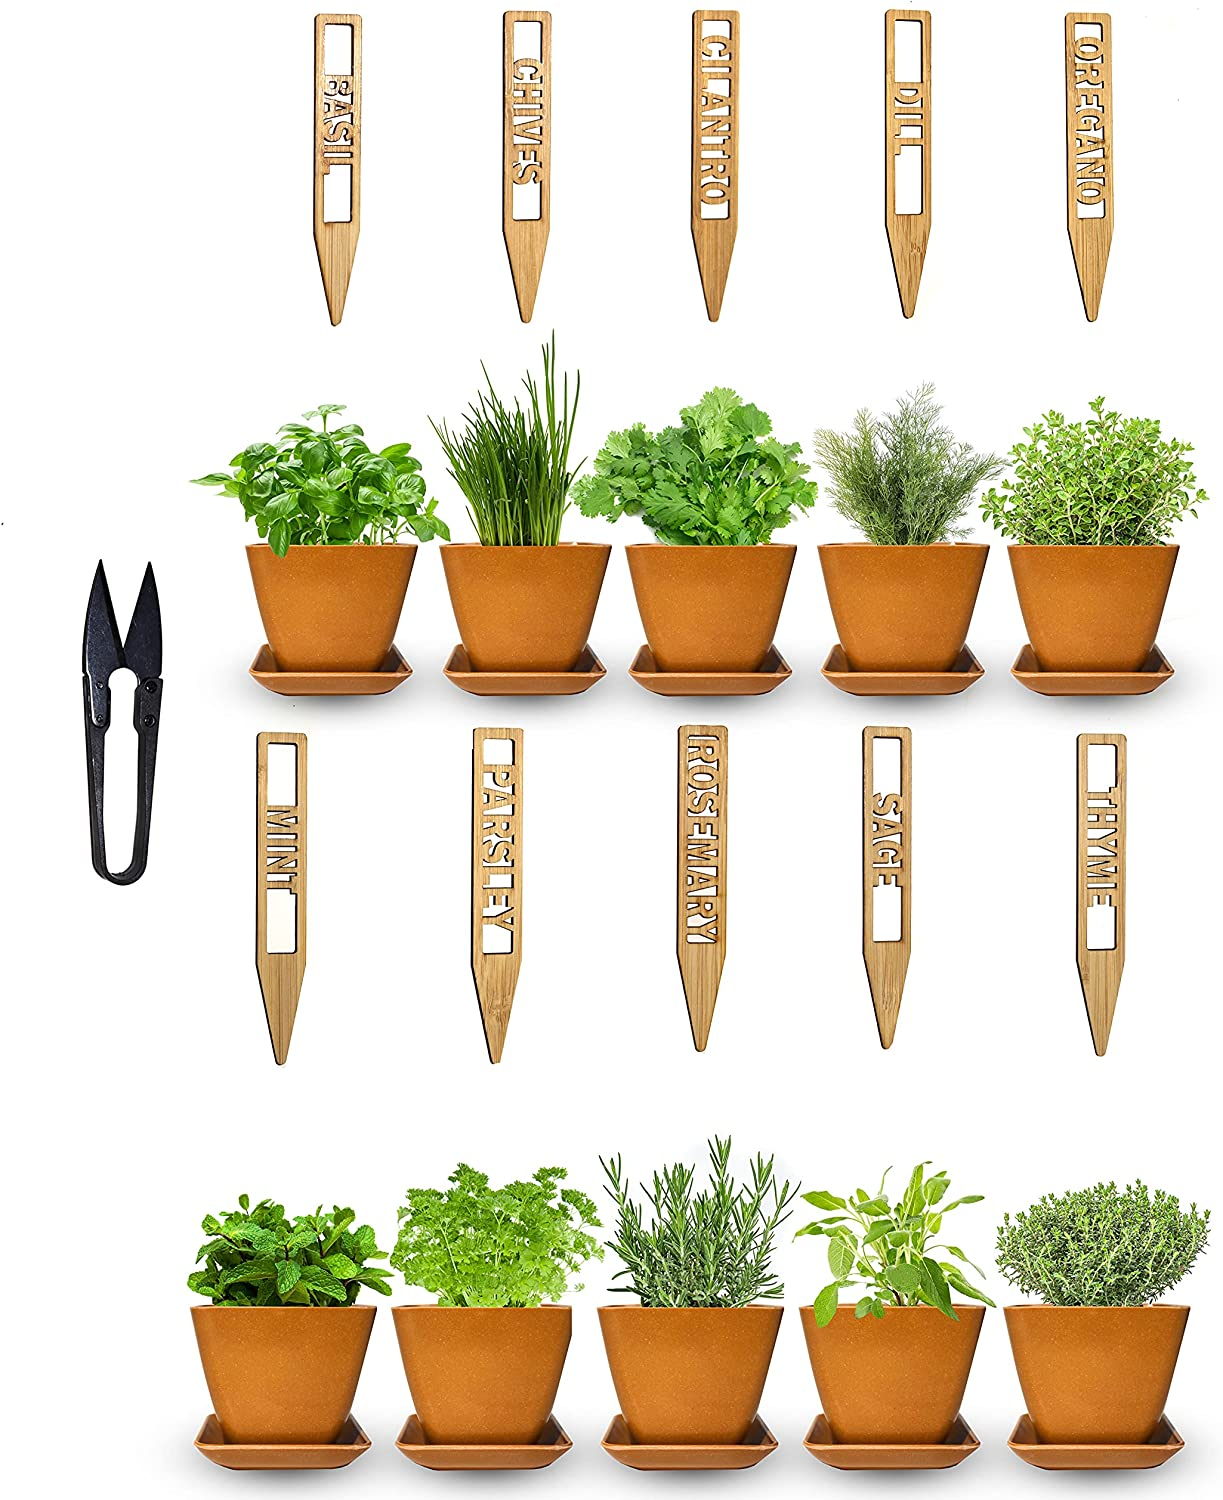 Garden Of Eden 10 Herb Seed Bamboo Pots High material Plant w Kit Max 86% OFF Labe